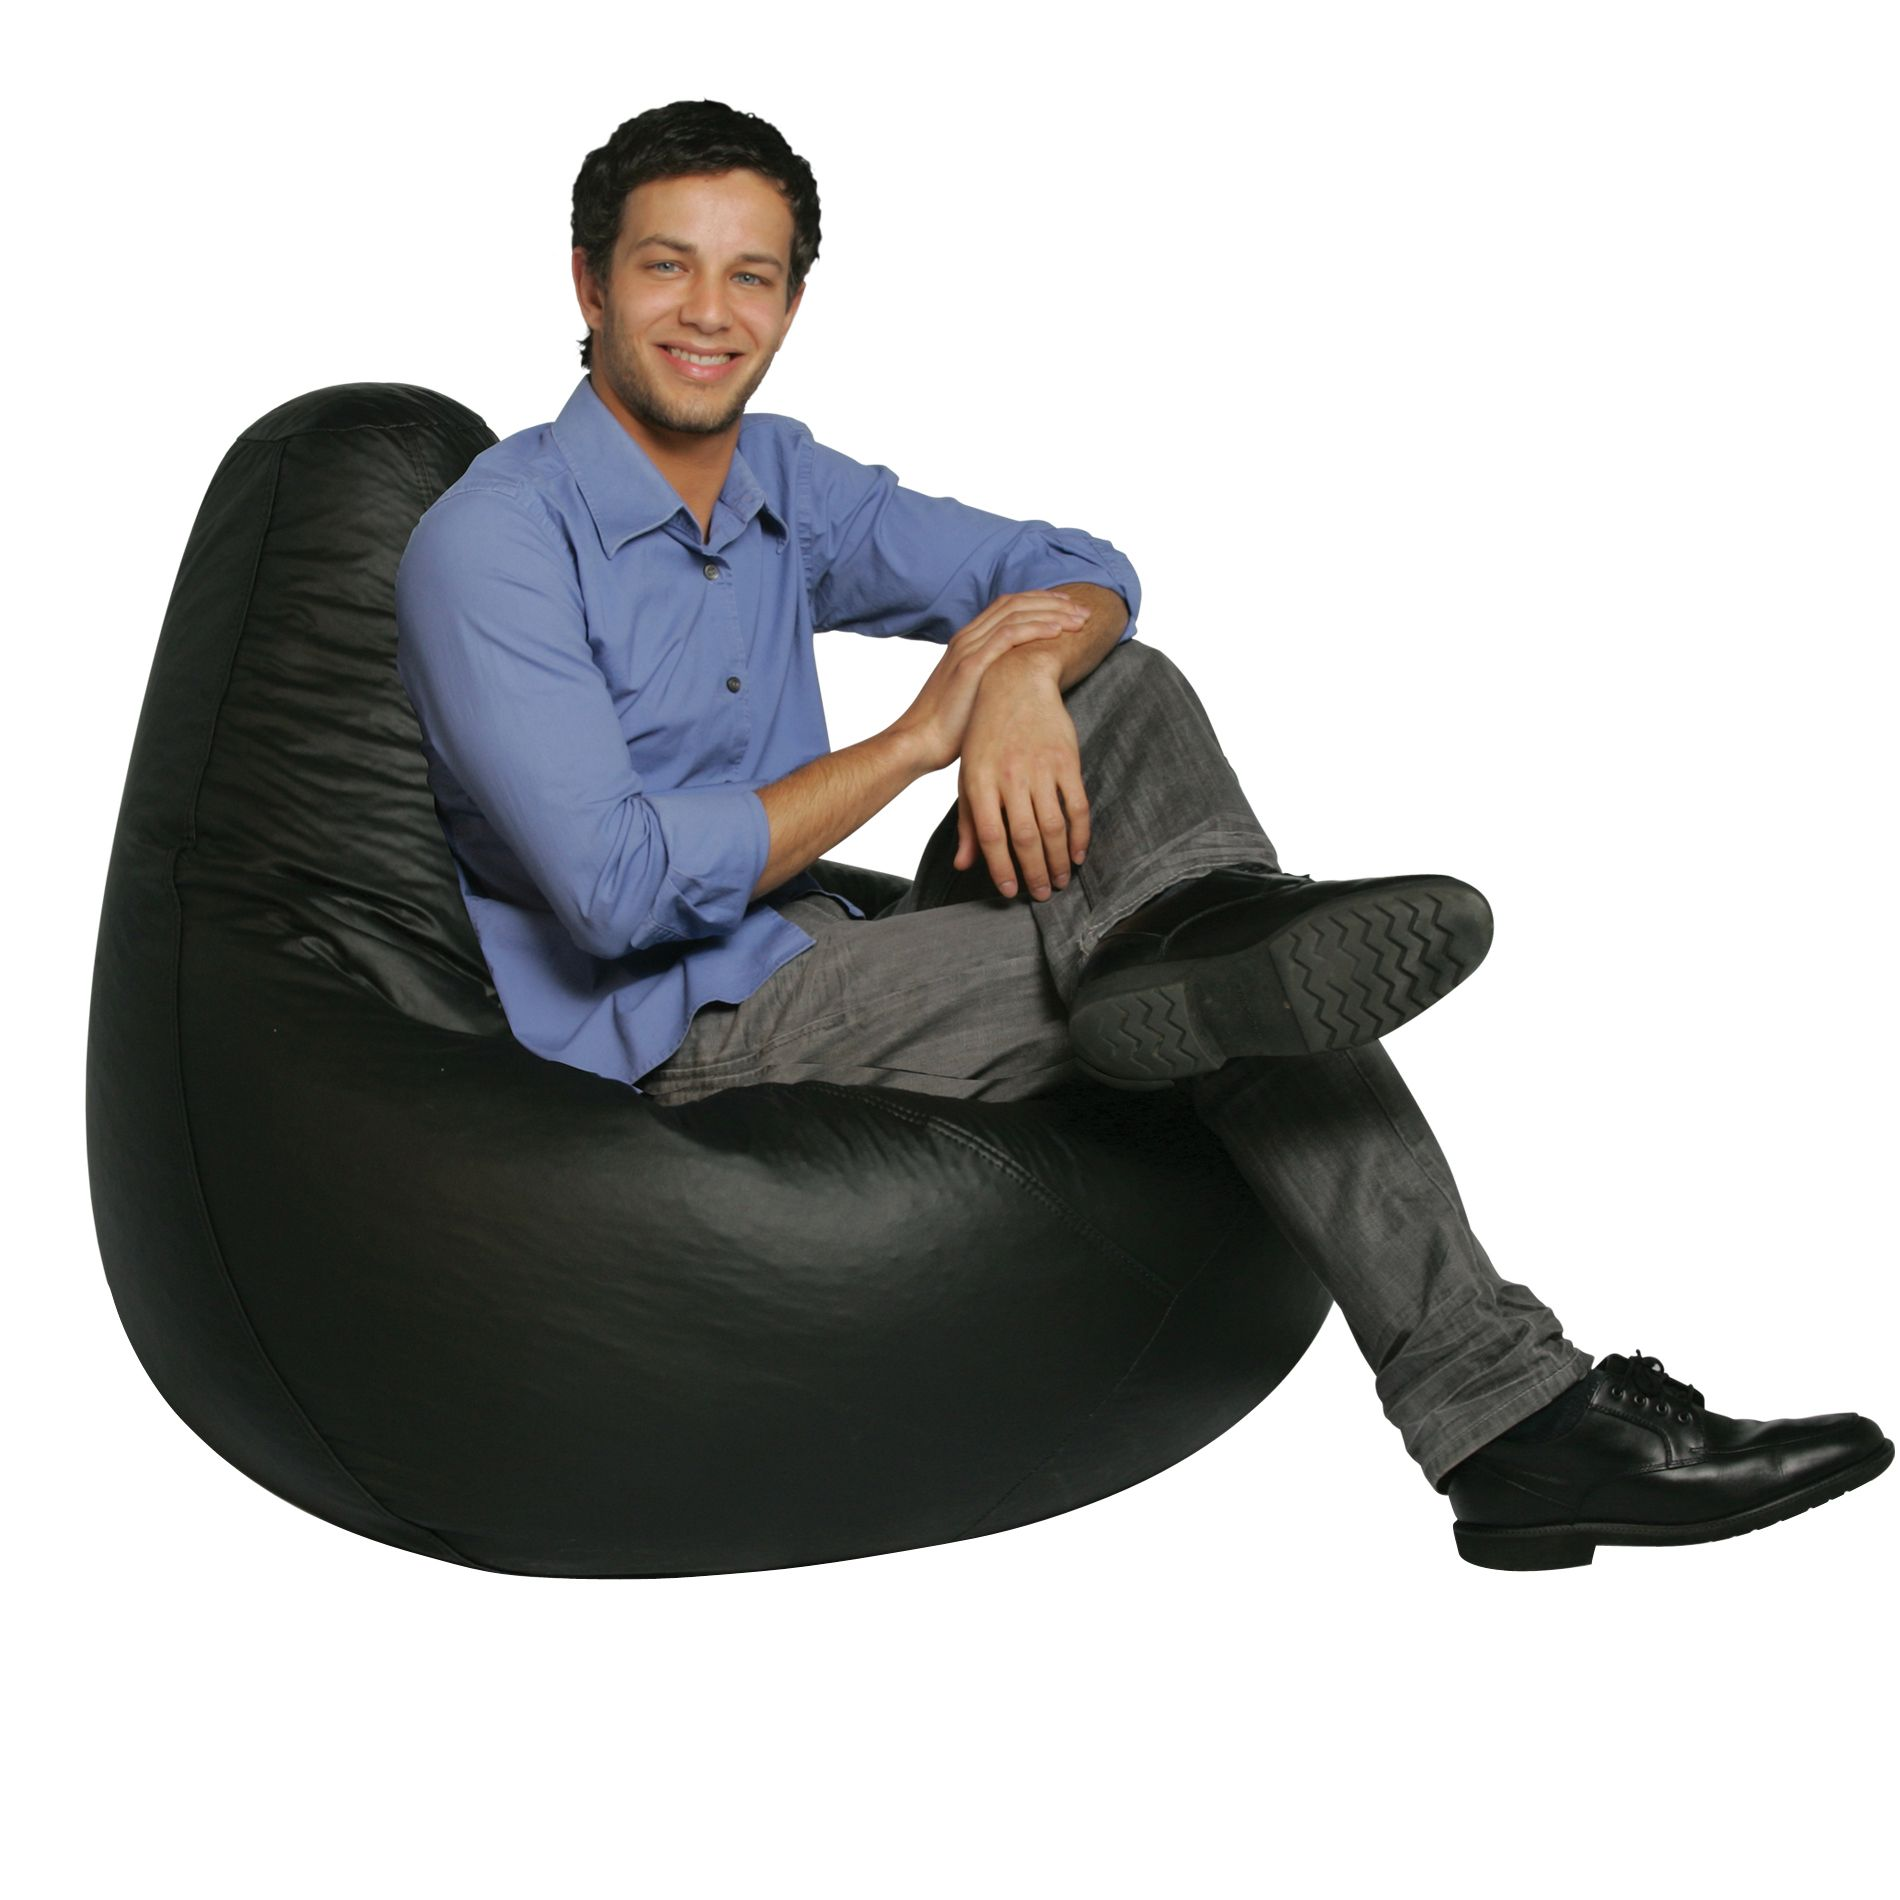 Adult Black Vinyl Bean Bag Chair Skin/Cover